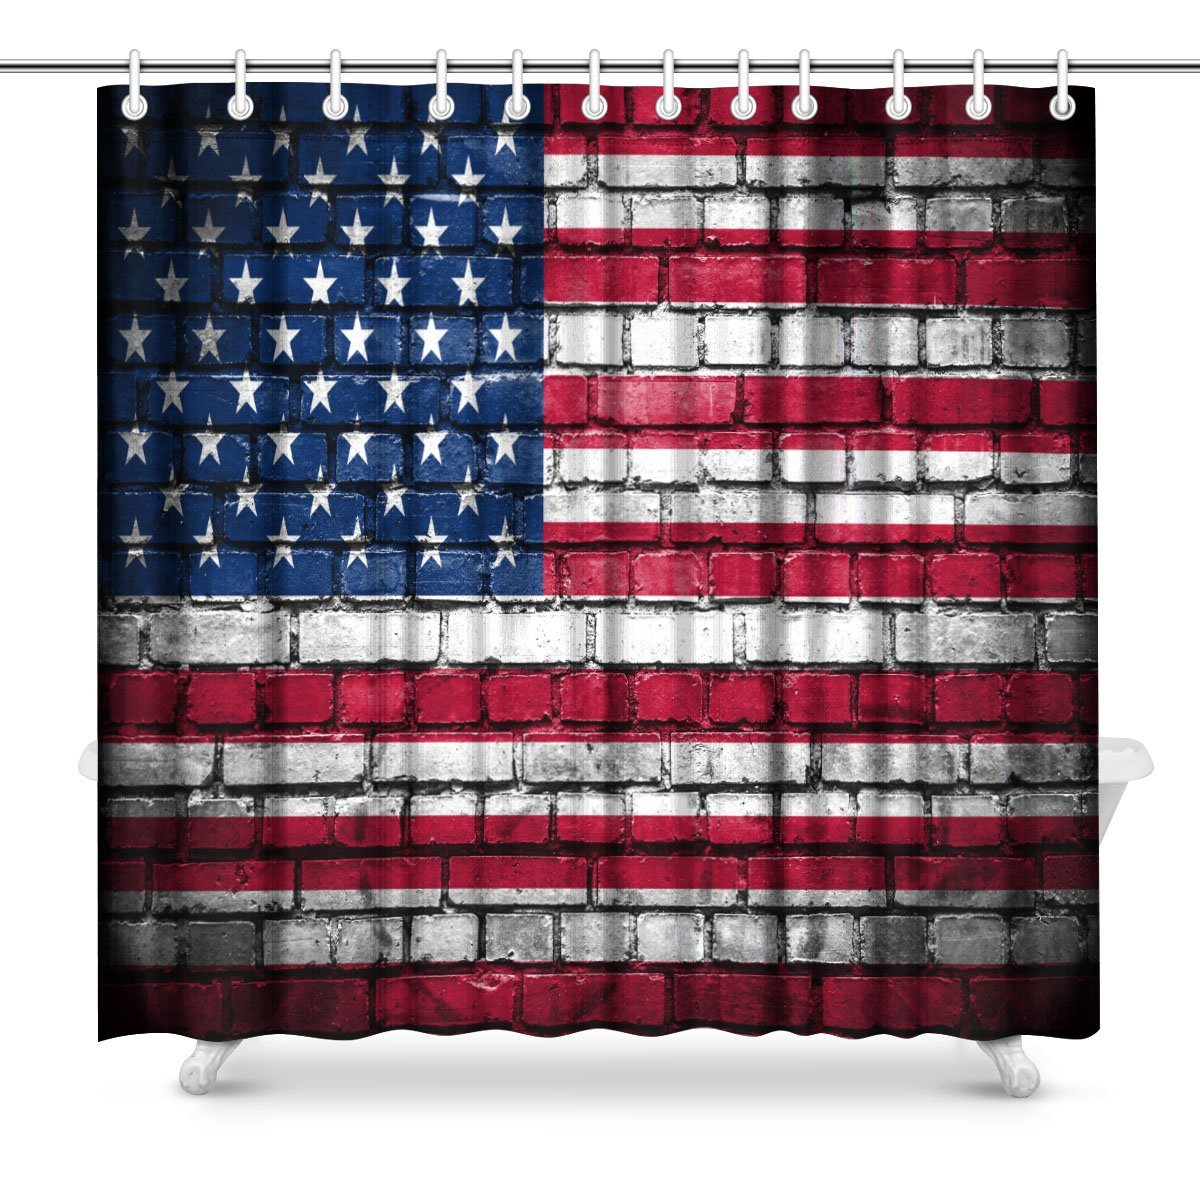 Brick Wall With Painted Flag Of United States America Fabric Bathroom Shower Curtain Decor Set Hooks In Curtains From Home Garden On